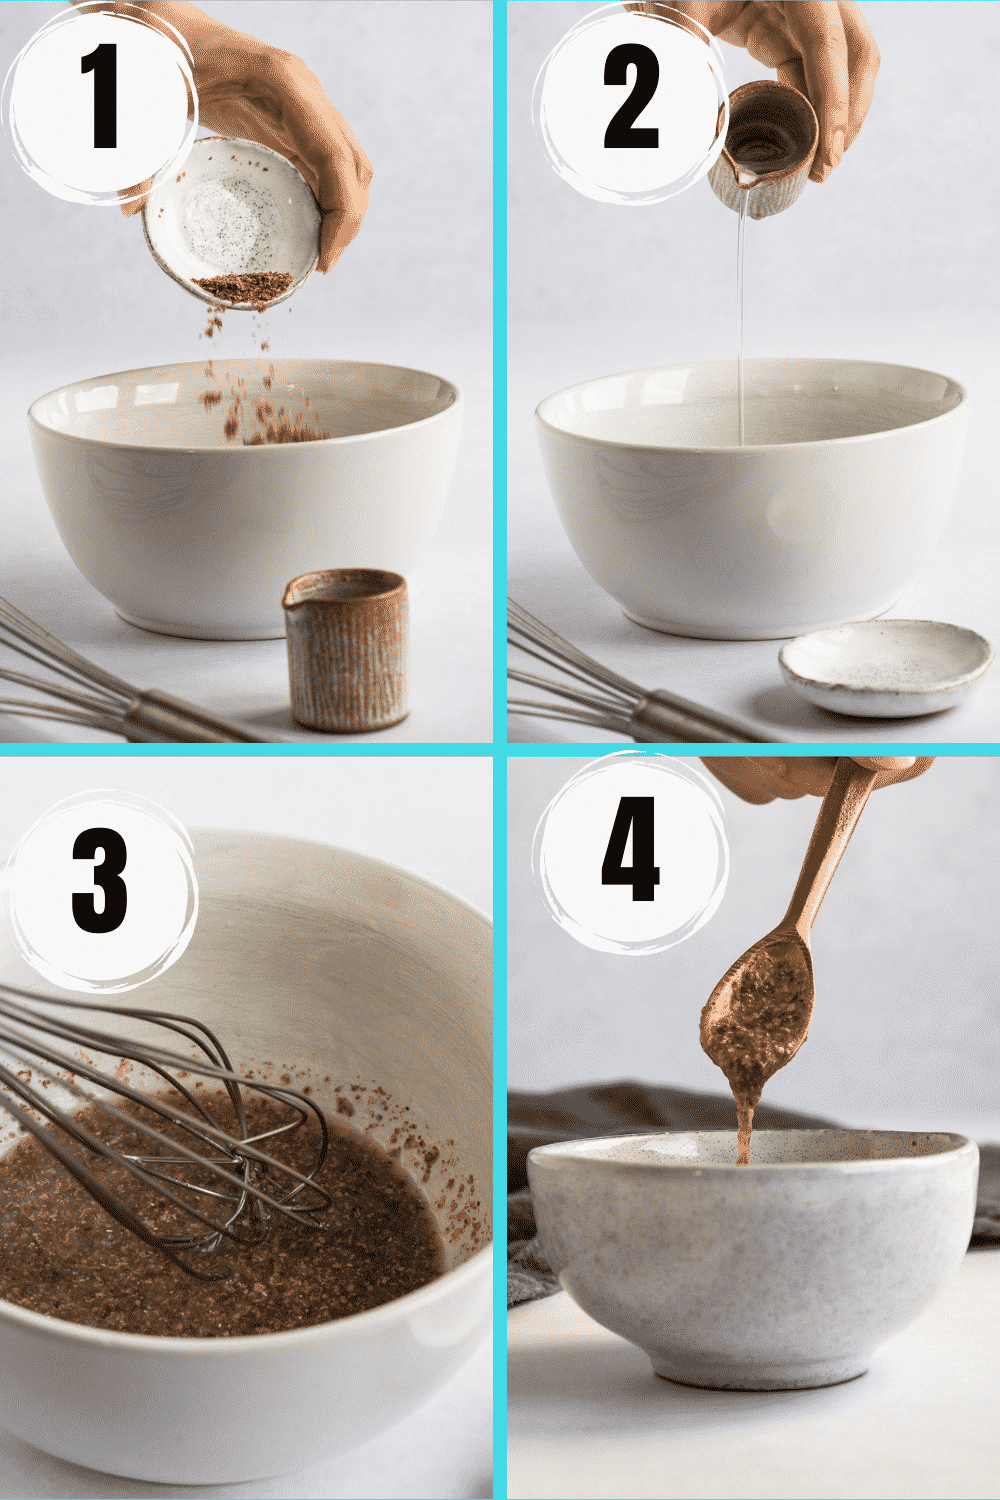 How to make a flax egg collage with water and ground flaxseed in 4 steps